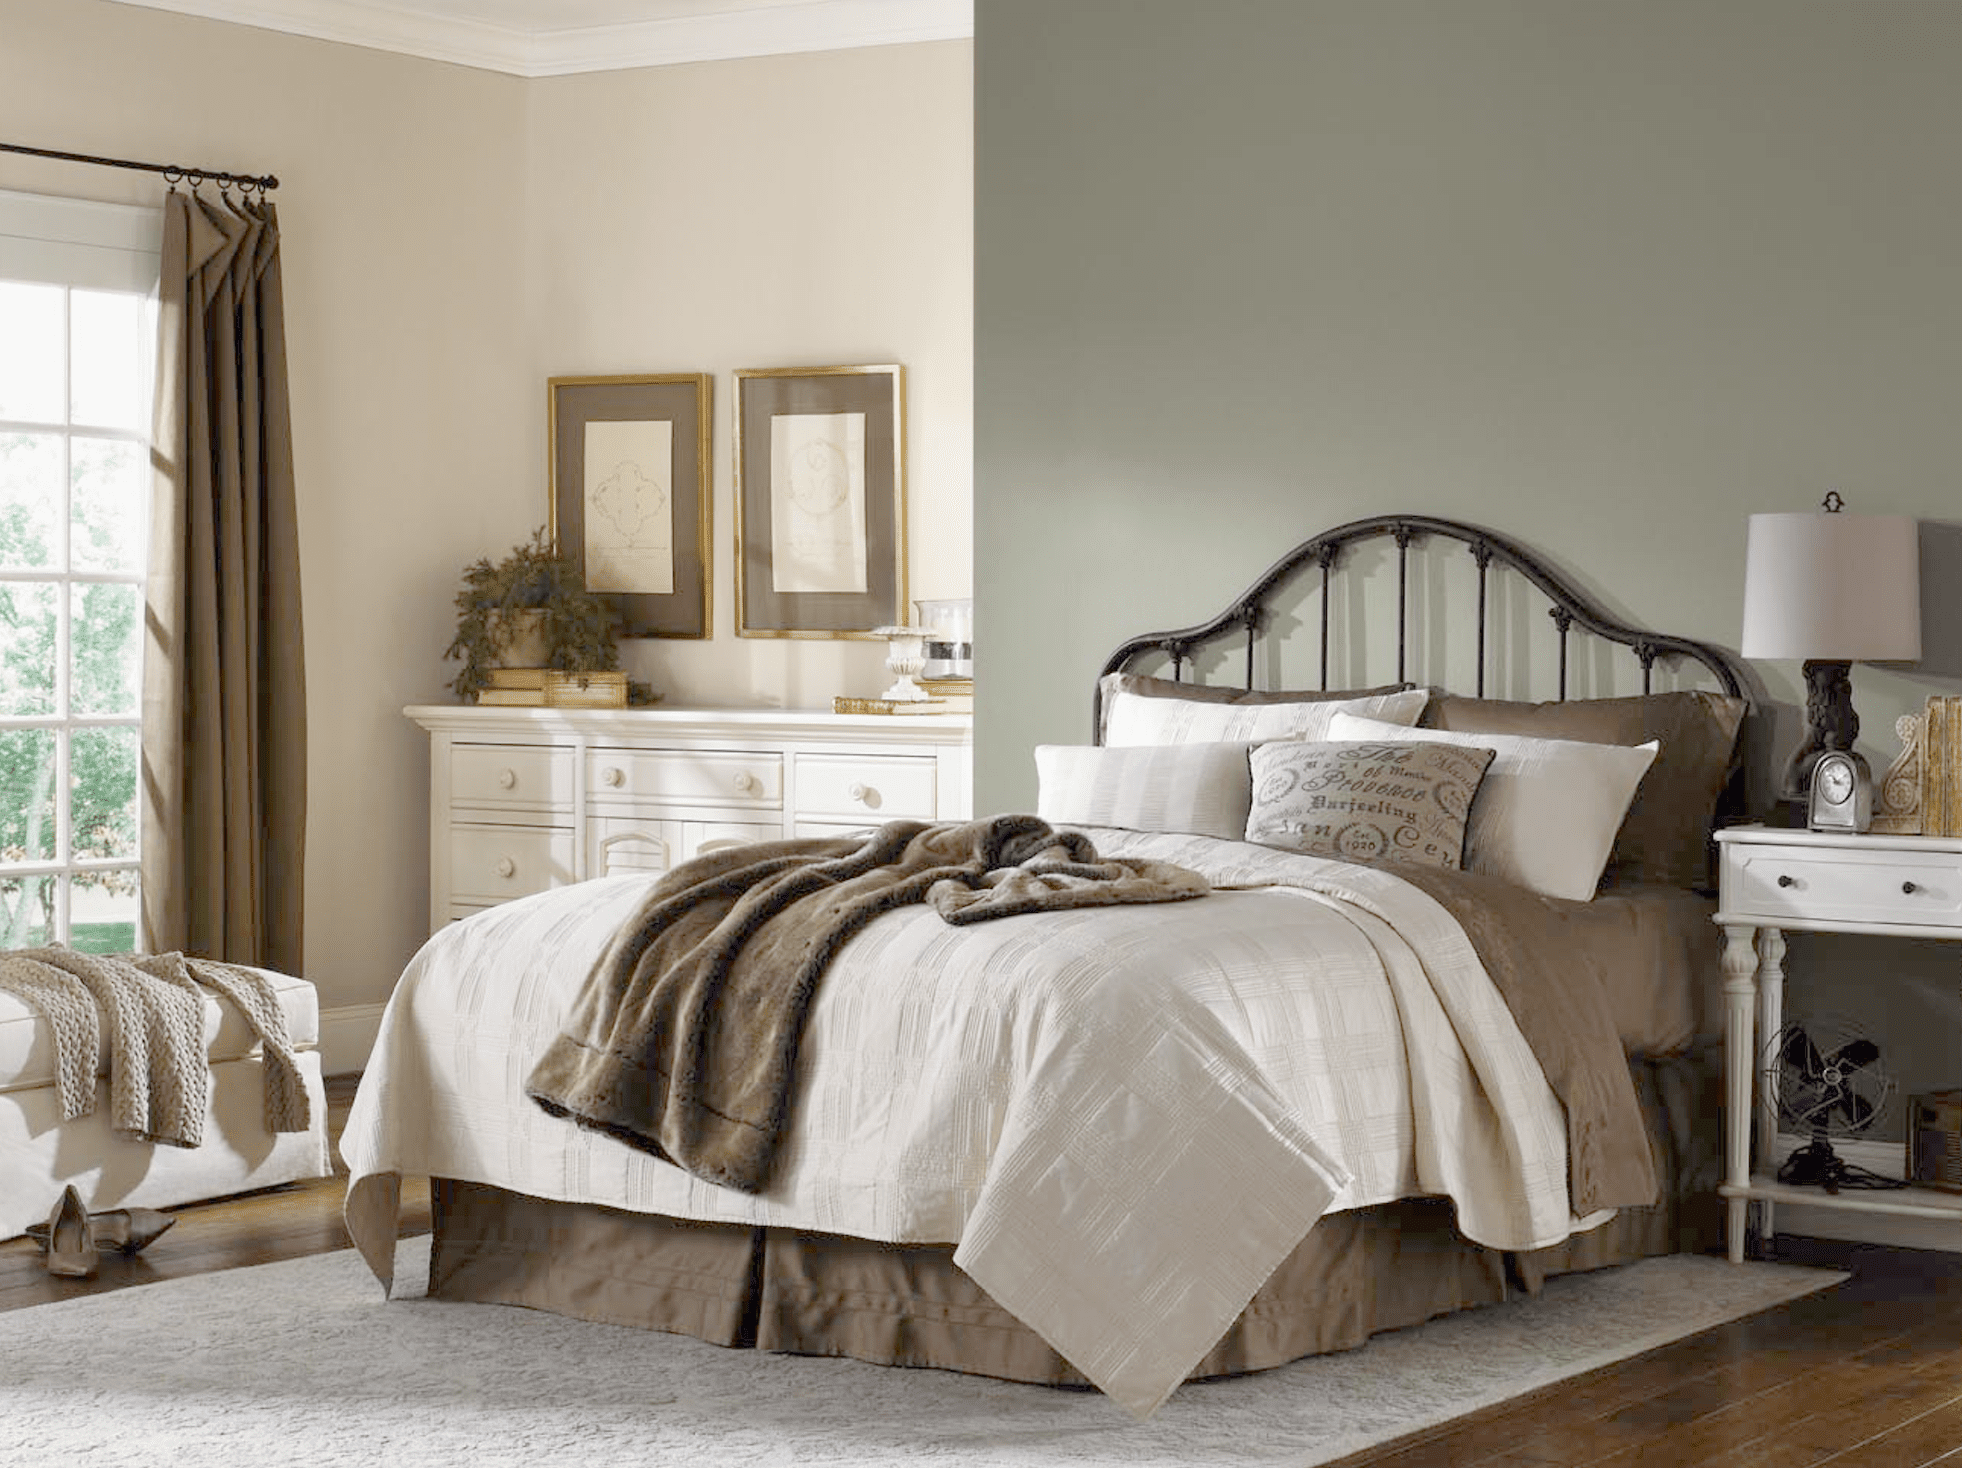 8 relaxing sherwin williams paint colors for bedrooms 16611 | screen shot 2015 03 30 at 4 08 30 pm 56a192e65f9b58b7d0c0c291